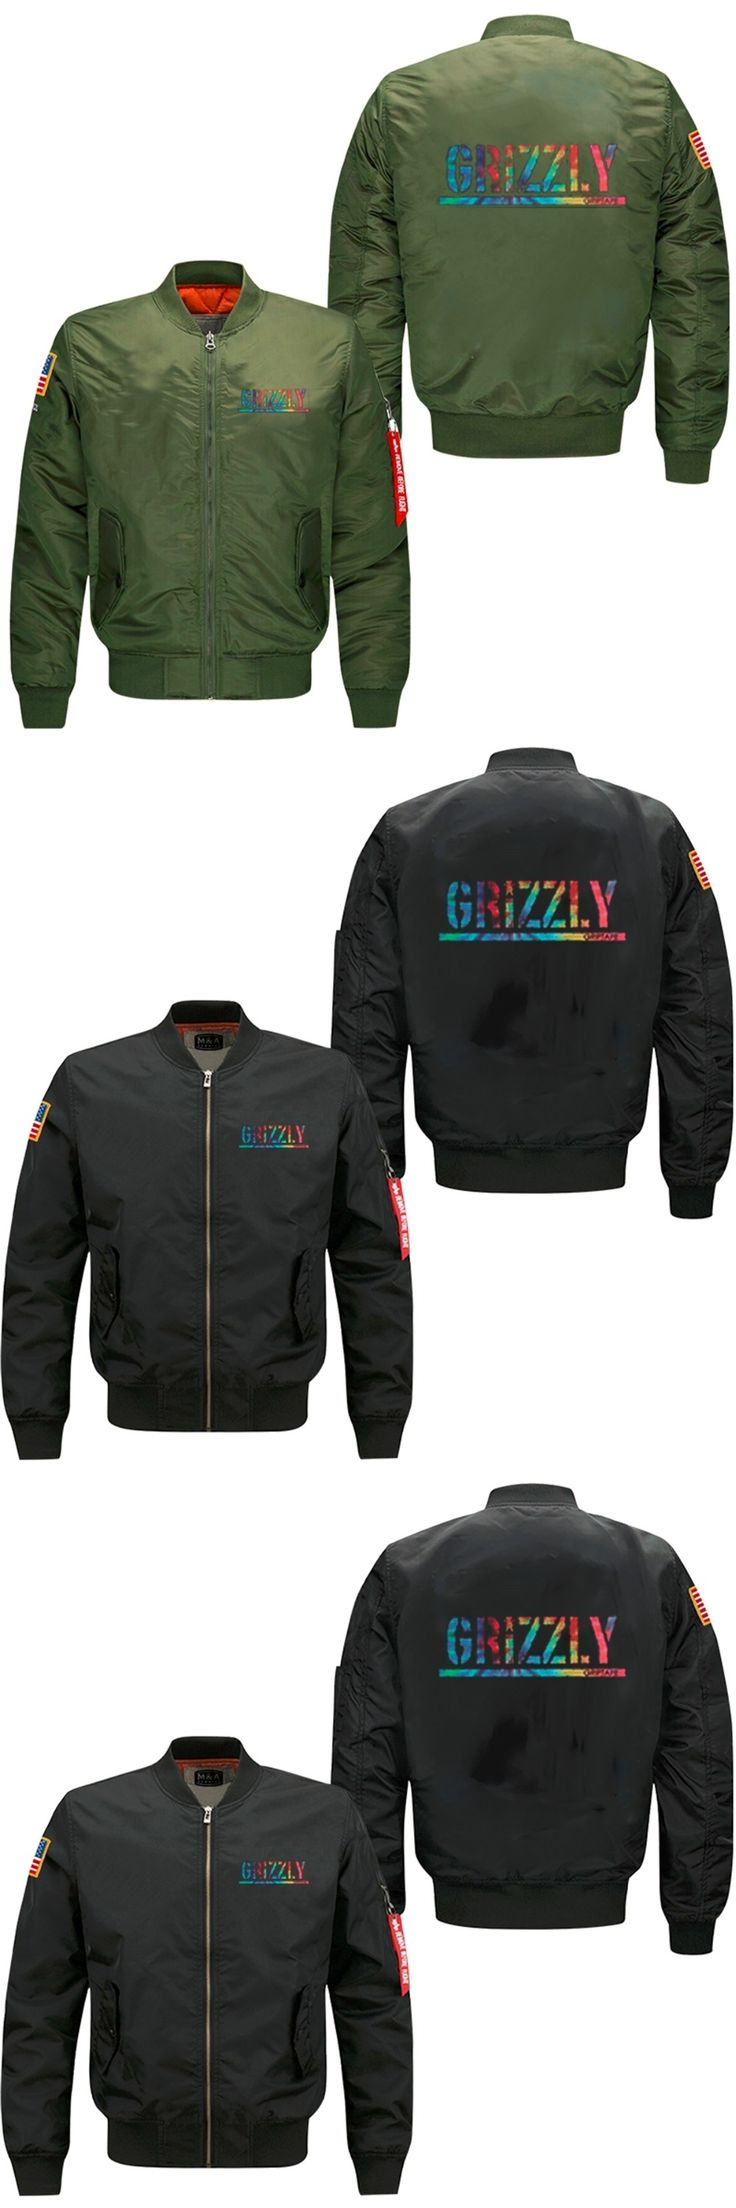 2017 GRIZZLY  spring autumn men's jacket collar code Air Force pilots jacket men's baseball uniform USA size